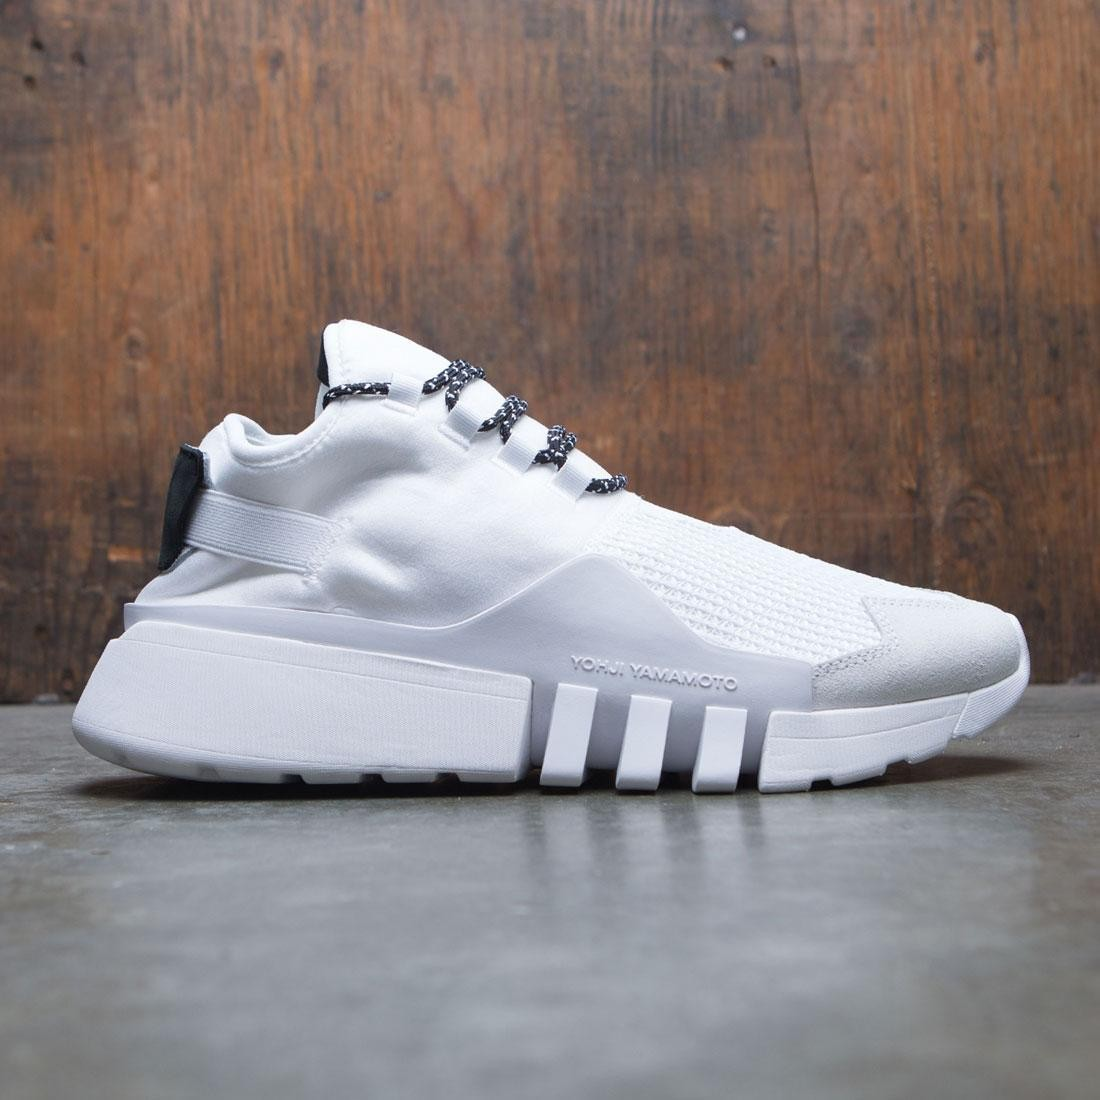 10bcd20dc8bb Adidas Y-3 Men Ayero white footwear white core black